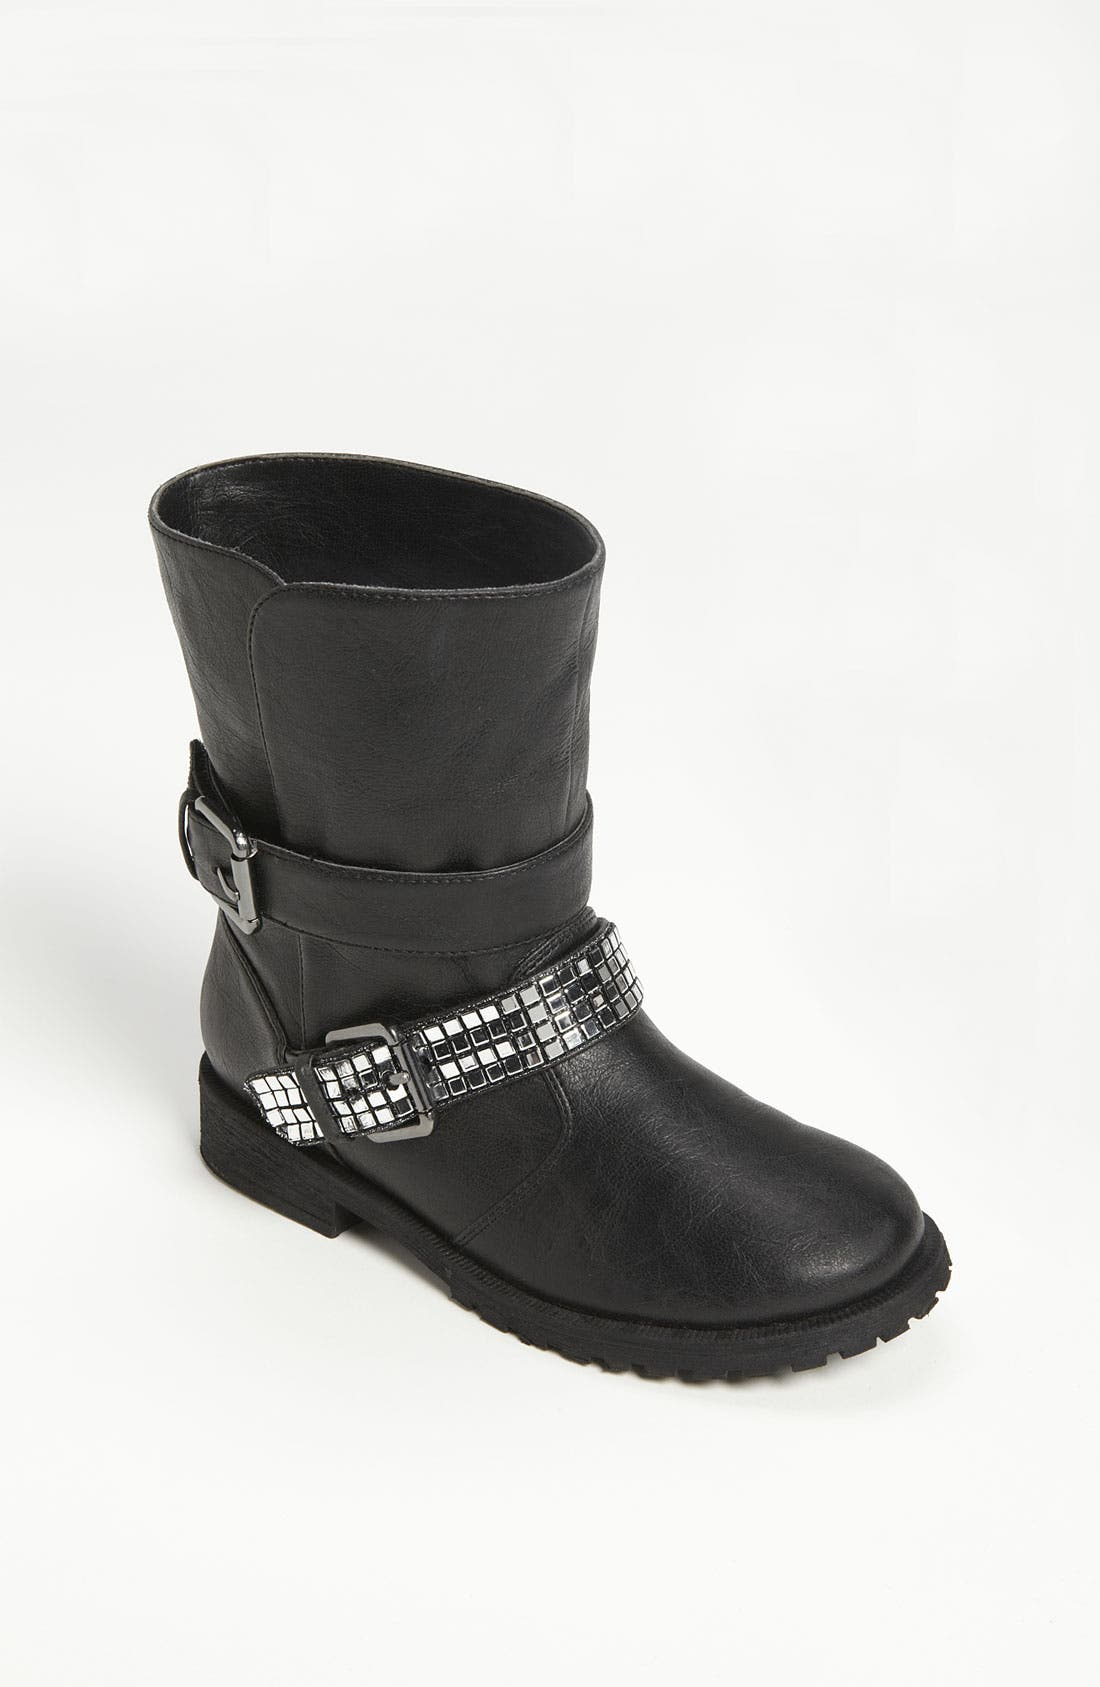 Alternate Image 1 Selected - Nordstrom 'Lindy' Boot (Toddler, Little Kid & Big Kid)